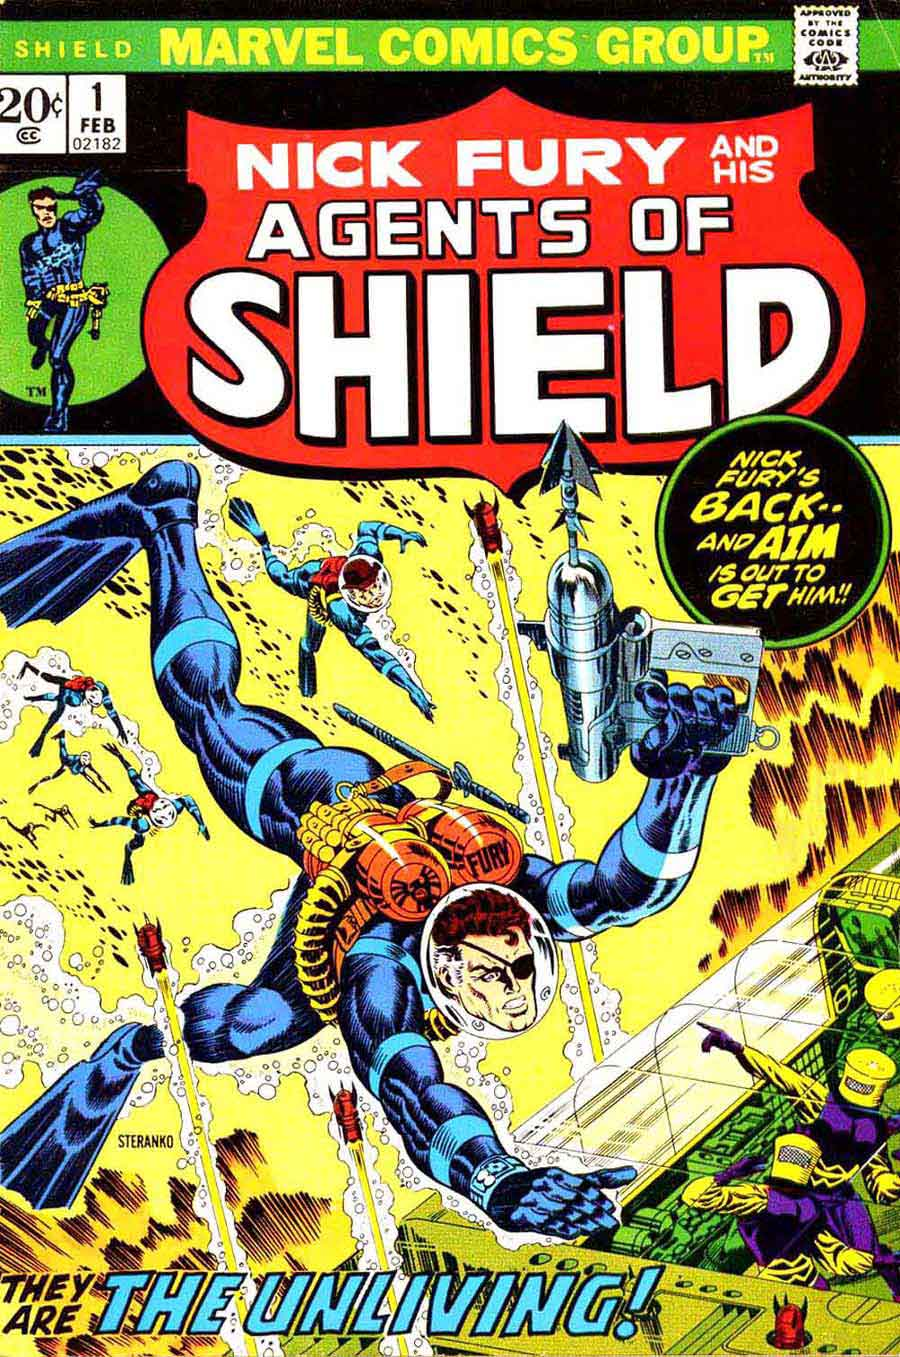 Shield v1 #1 marvel bronze age comic book cover art by Jim Steranko